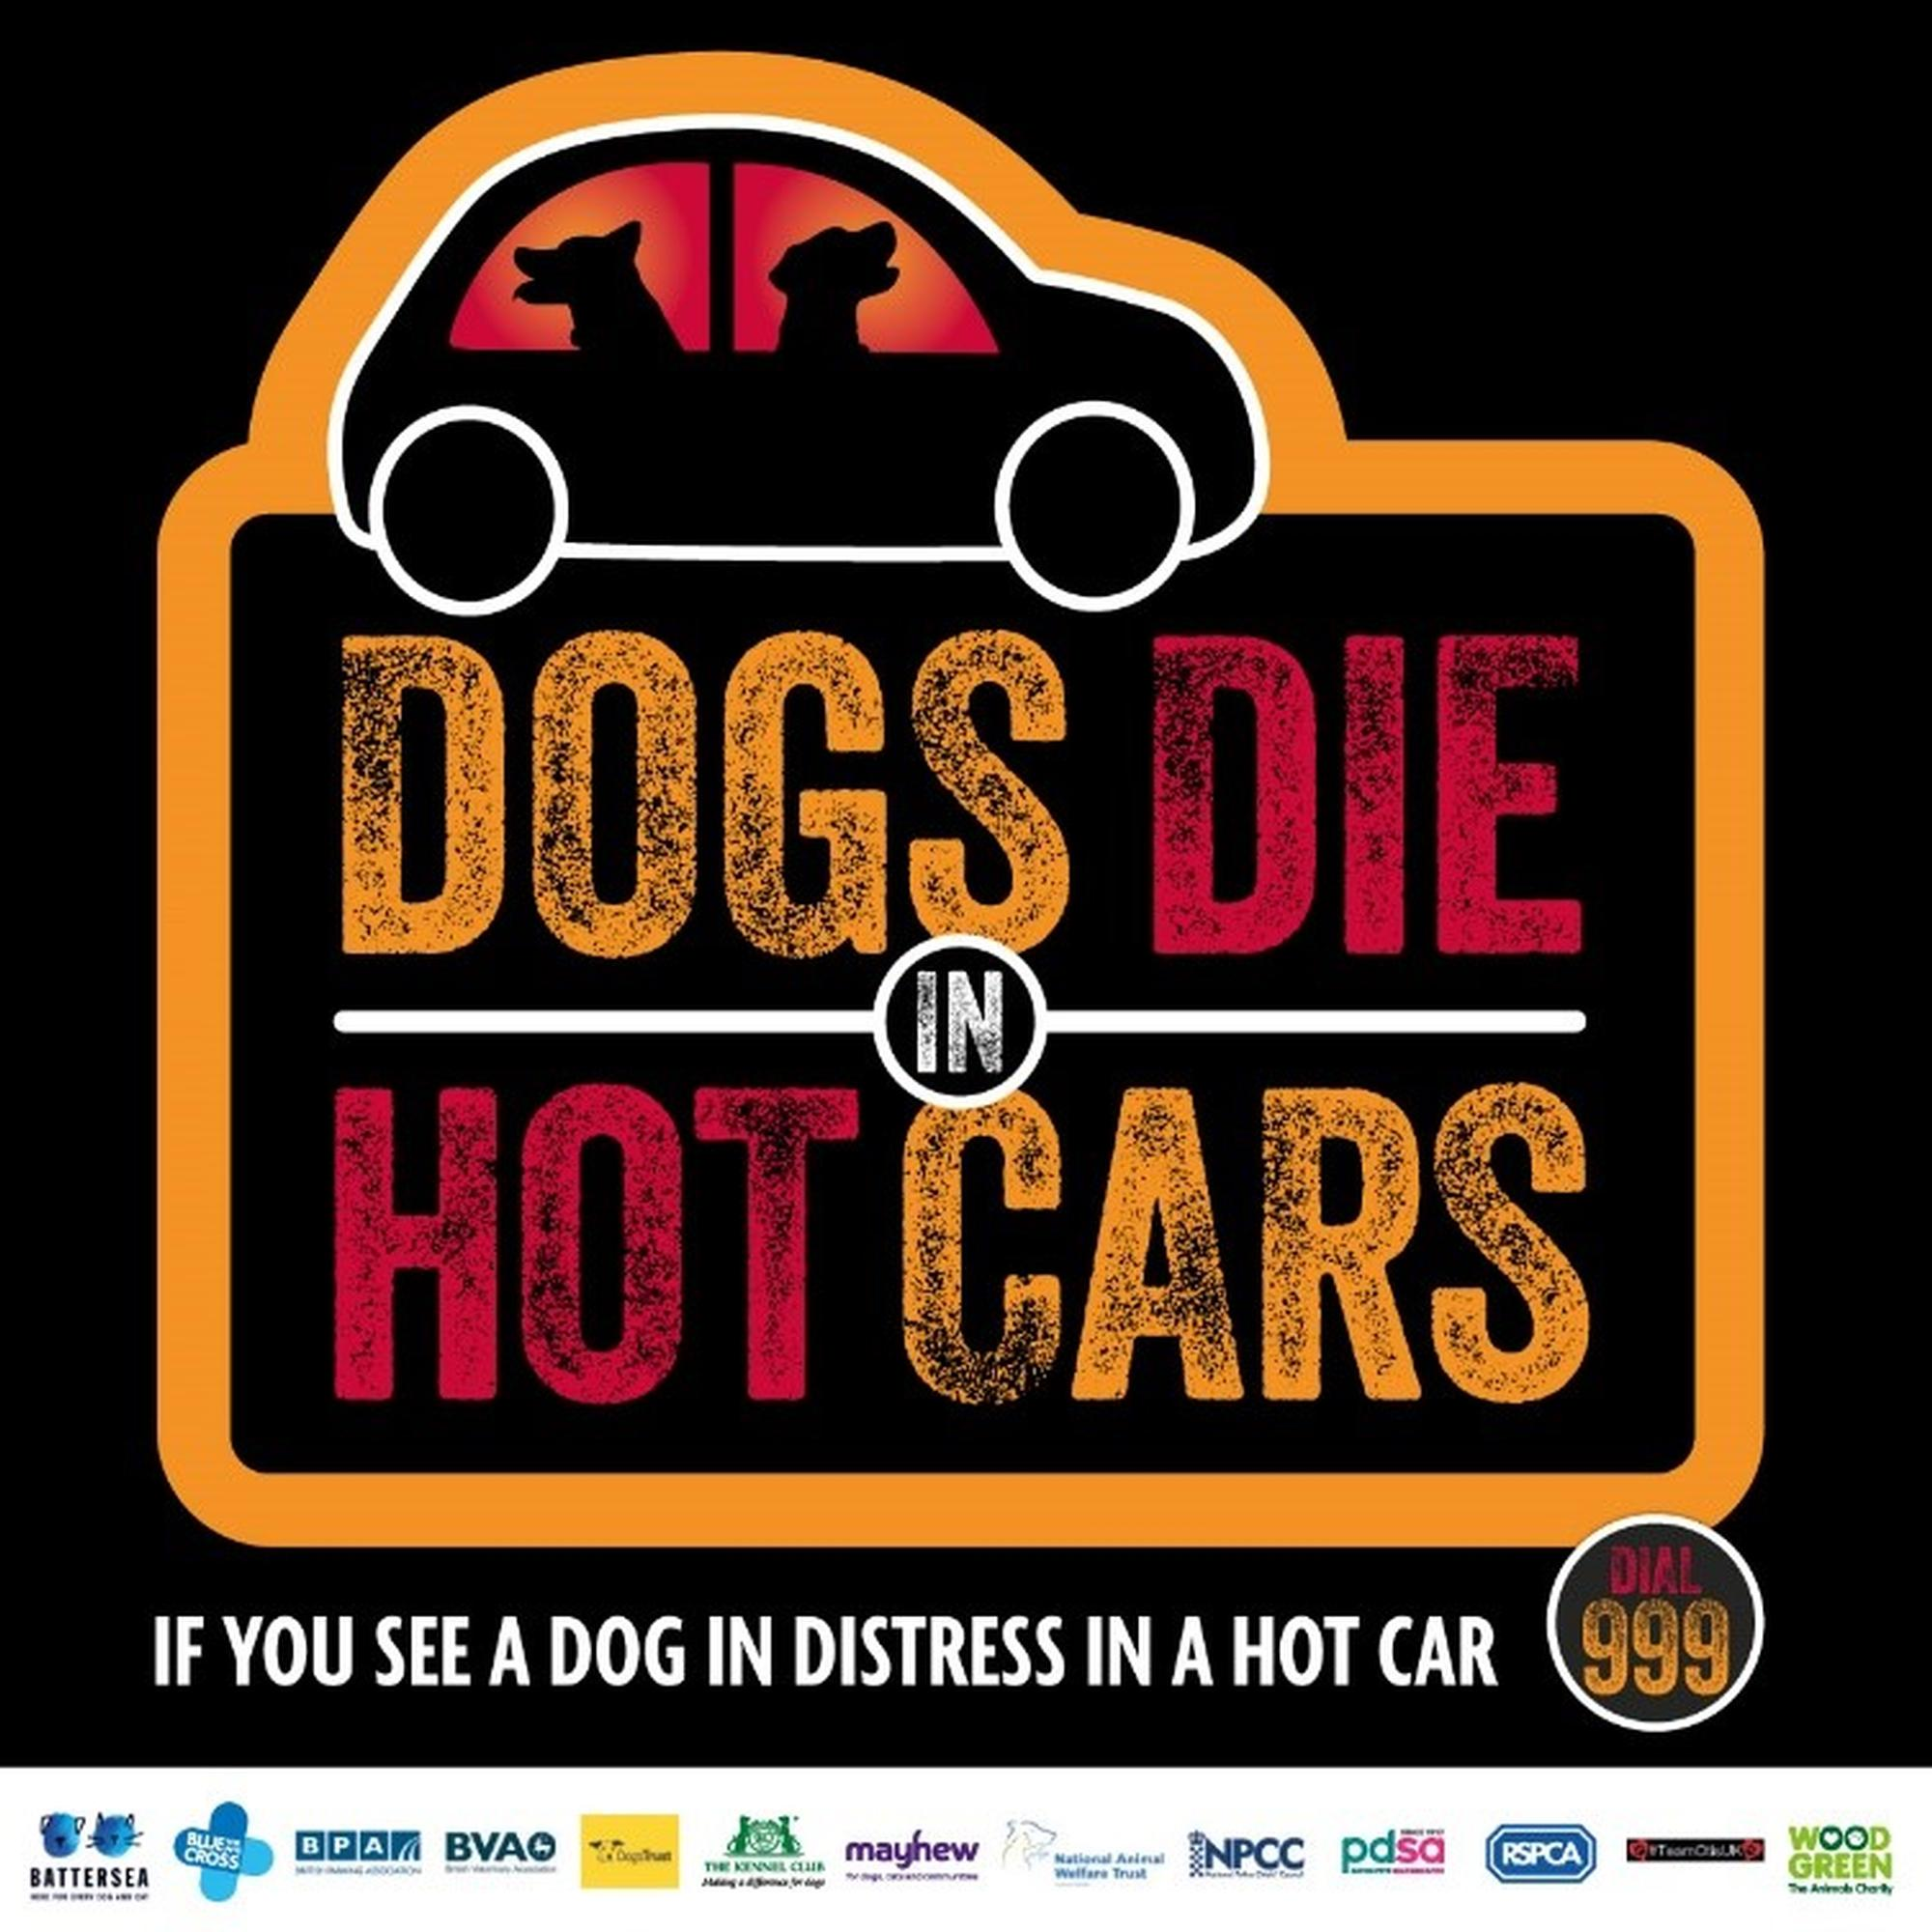 If you see a dog in distress in a parked car call 999